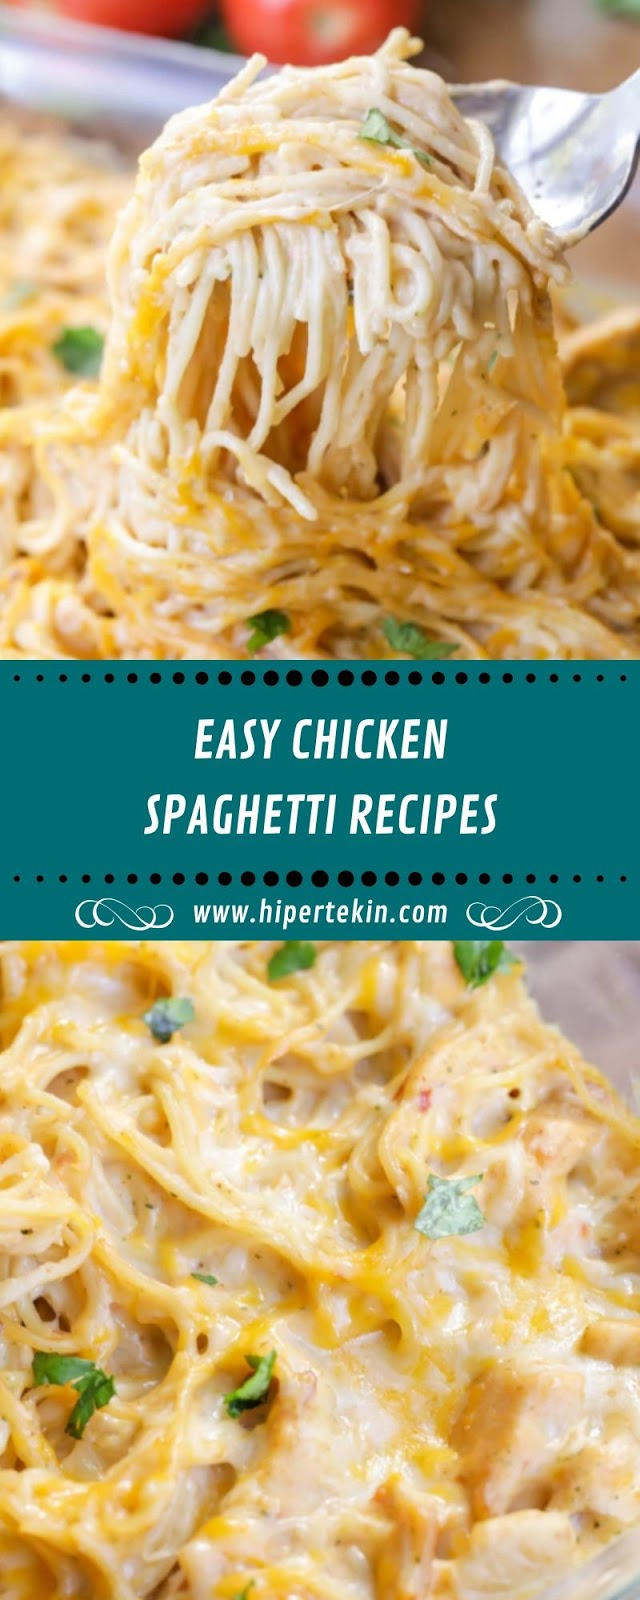 EASY CHICKEN SPAGHETTI RECIPES